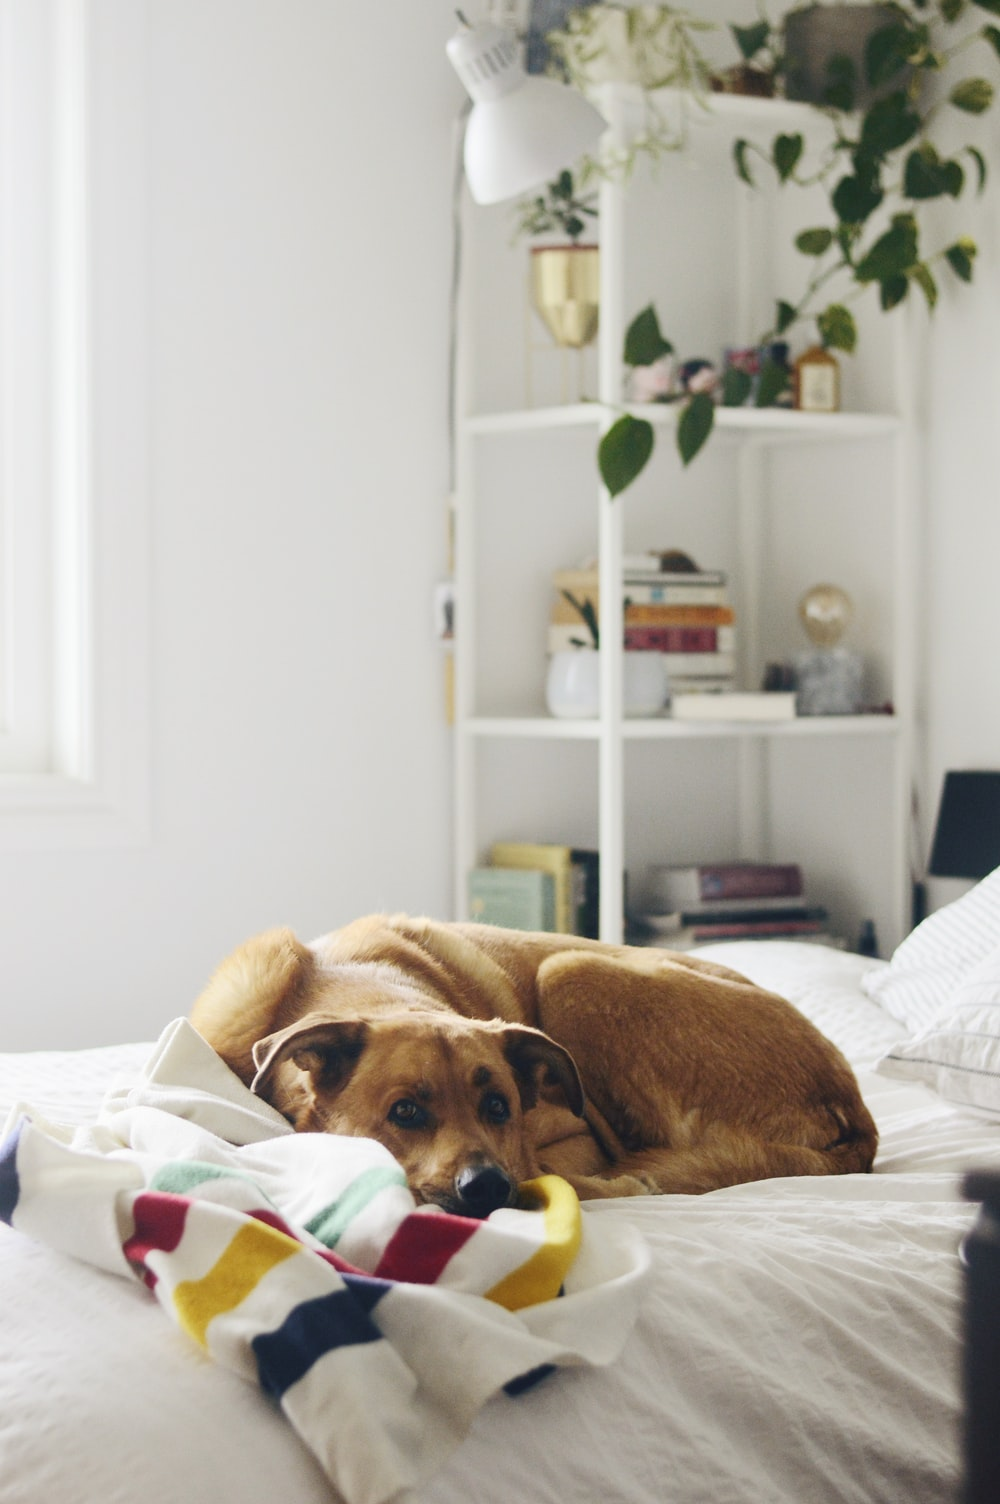 brown short coated dog lying on bed